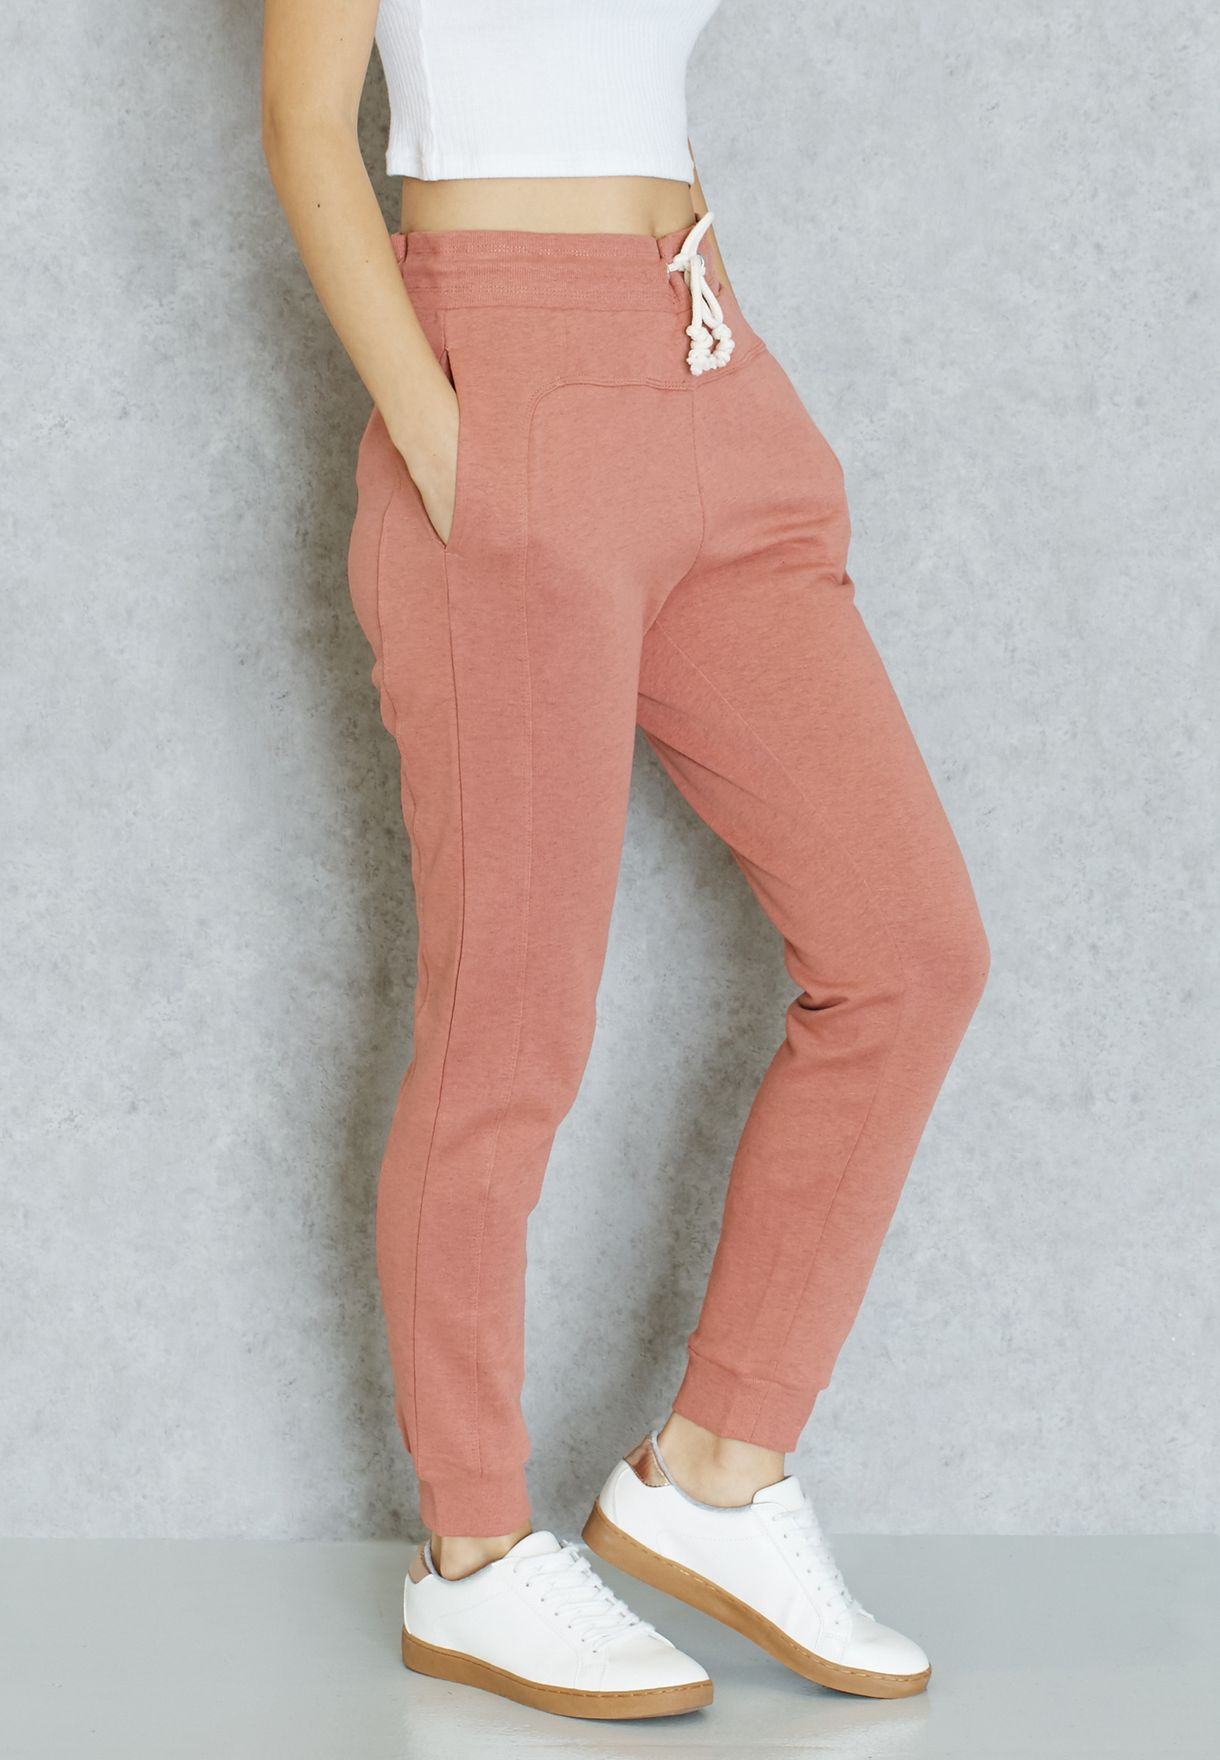 af681425e1 Shop Only pink Tie Waist Sweatpants for Women in Kuwait - ON544AT15FKI